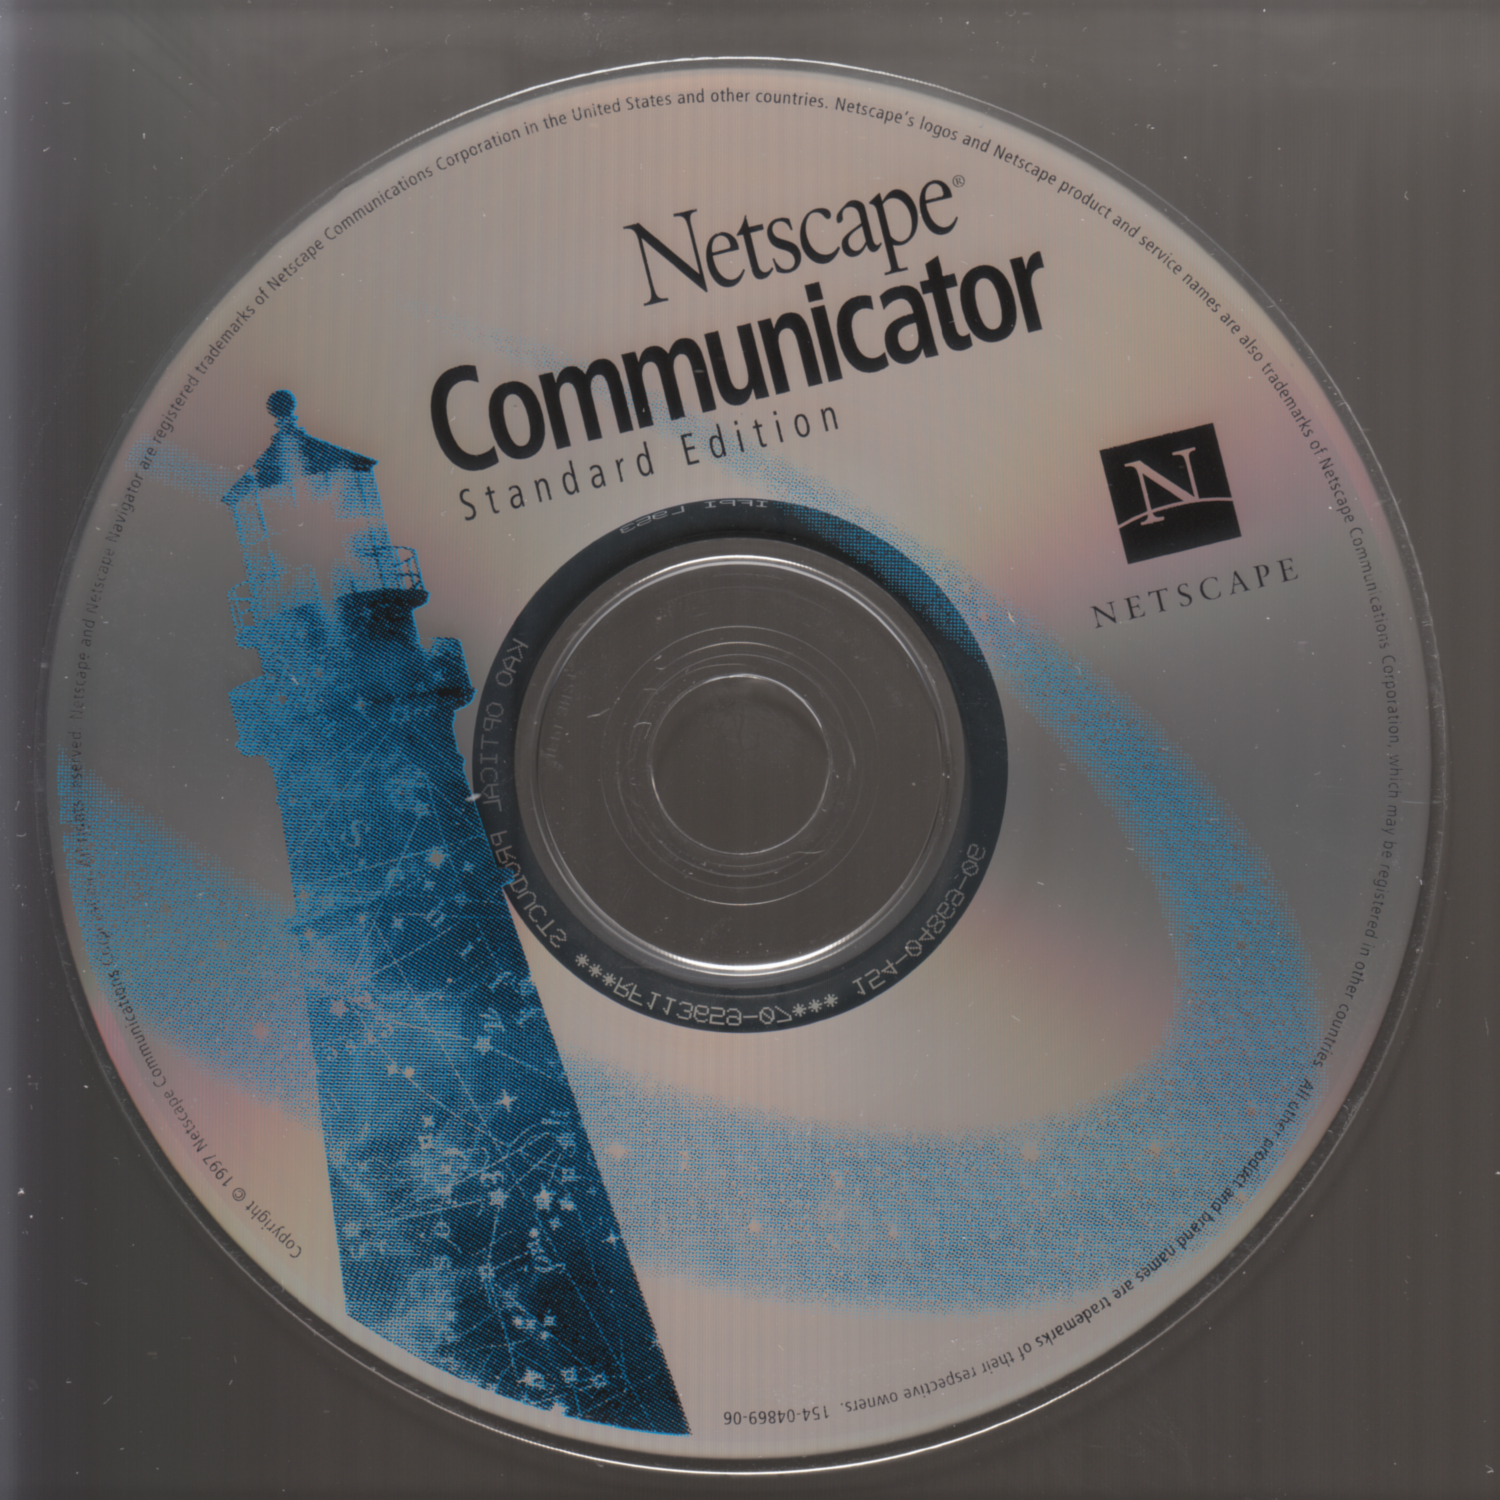 Photo of Netscape Communicator Standard Edition CD-ROM